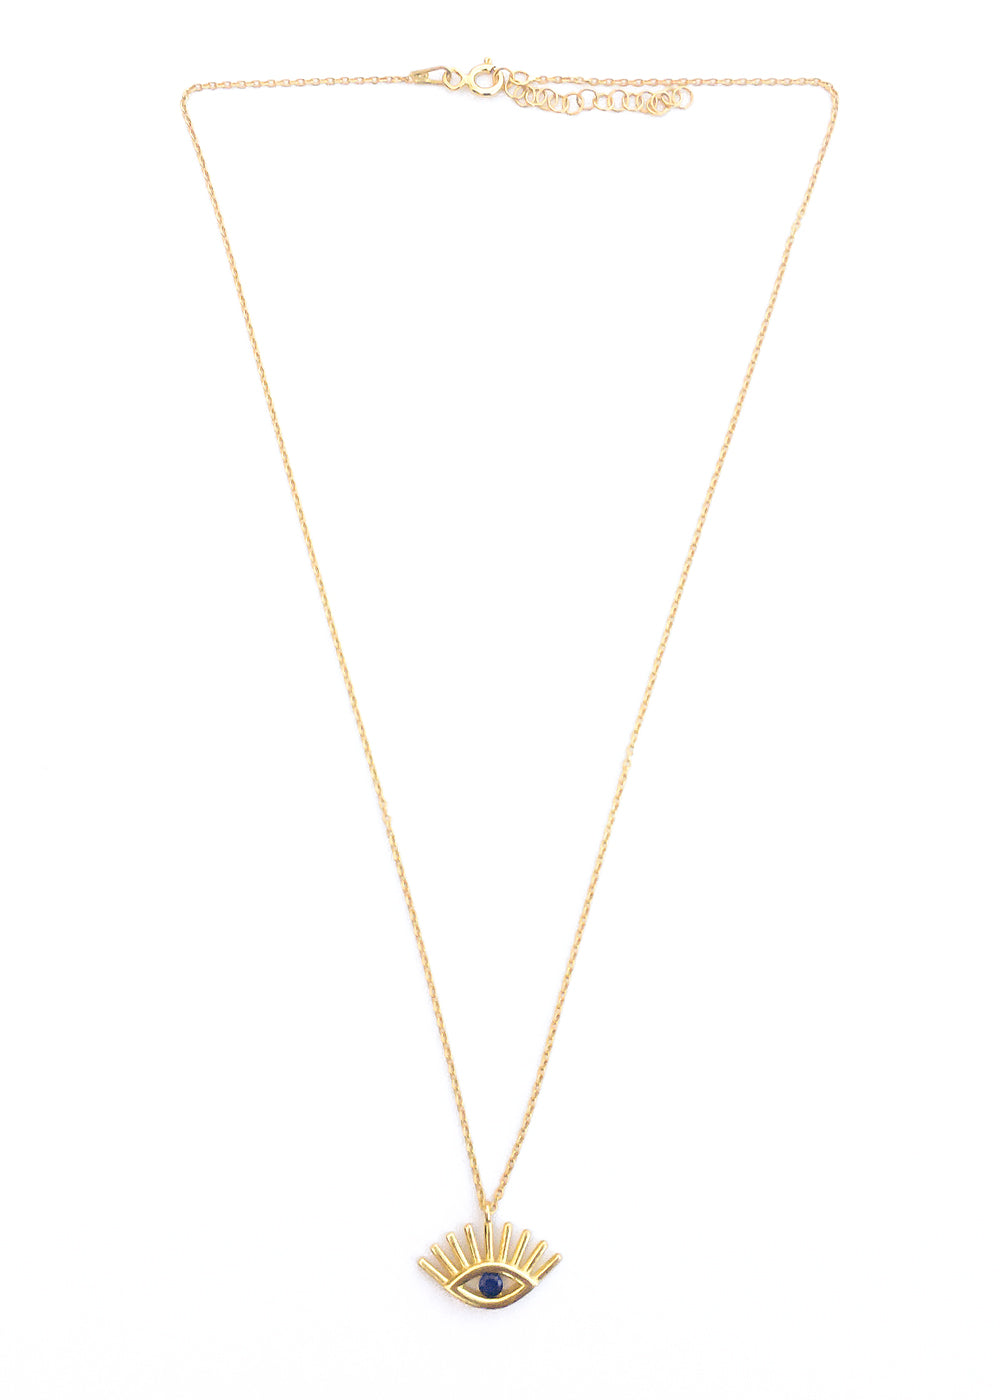 All Eyes On You Gold Necklace